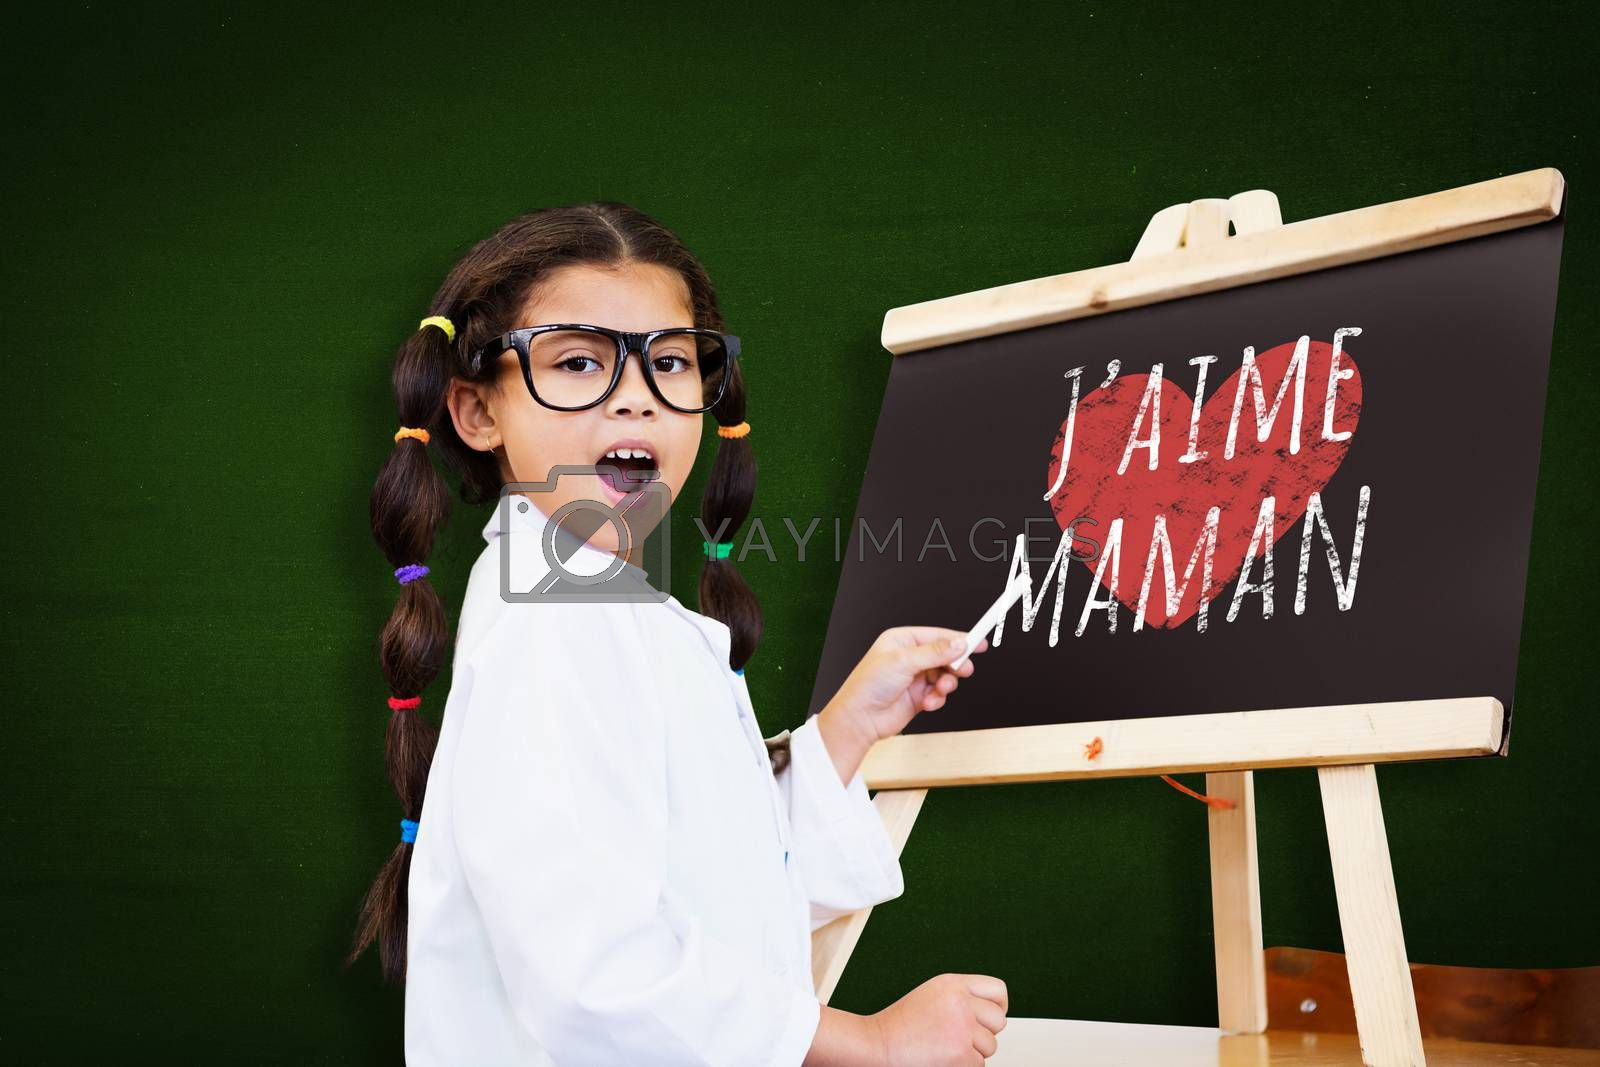 Cute pupil with chalkboard against green